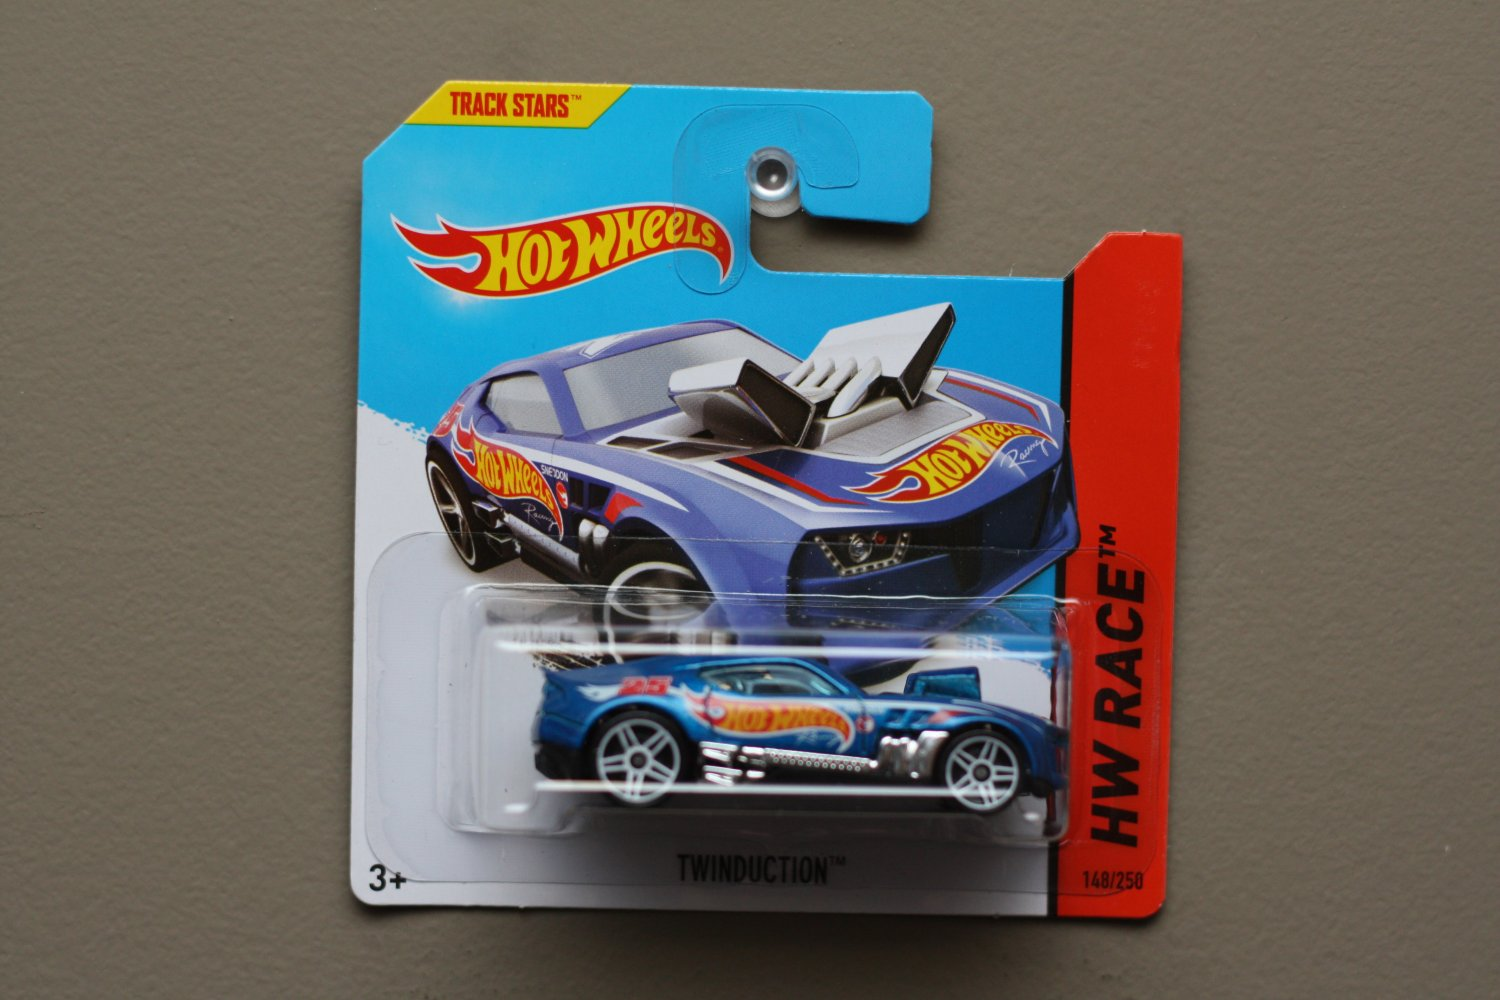 Hot Wheels 2014 HW Race Twinduction (blue) (Treasure Hunt)